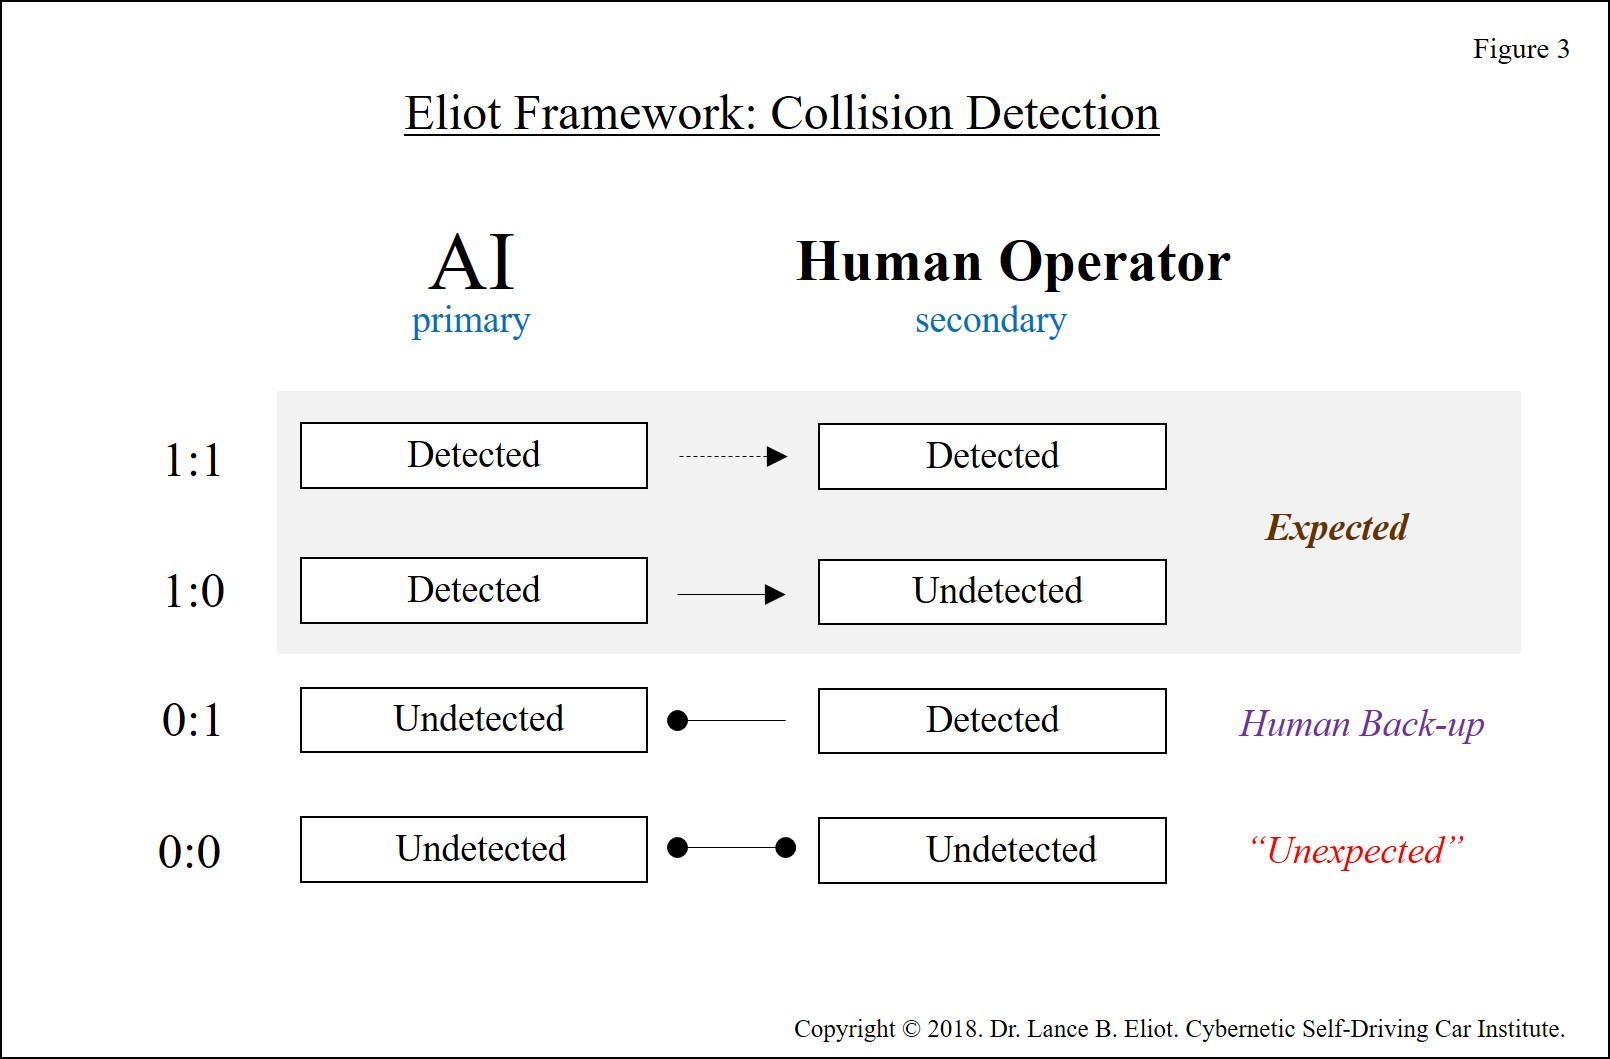 - Lance Eliot Uber Incident Figure 3 300 DPI - Initial Forensic Analysis of the Uber Self-Driving Car Incident in Arizona